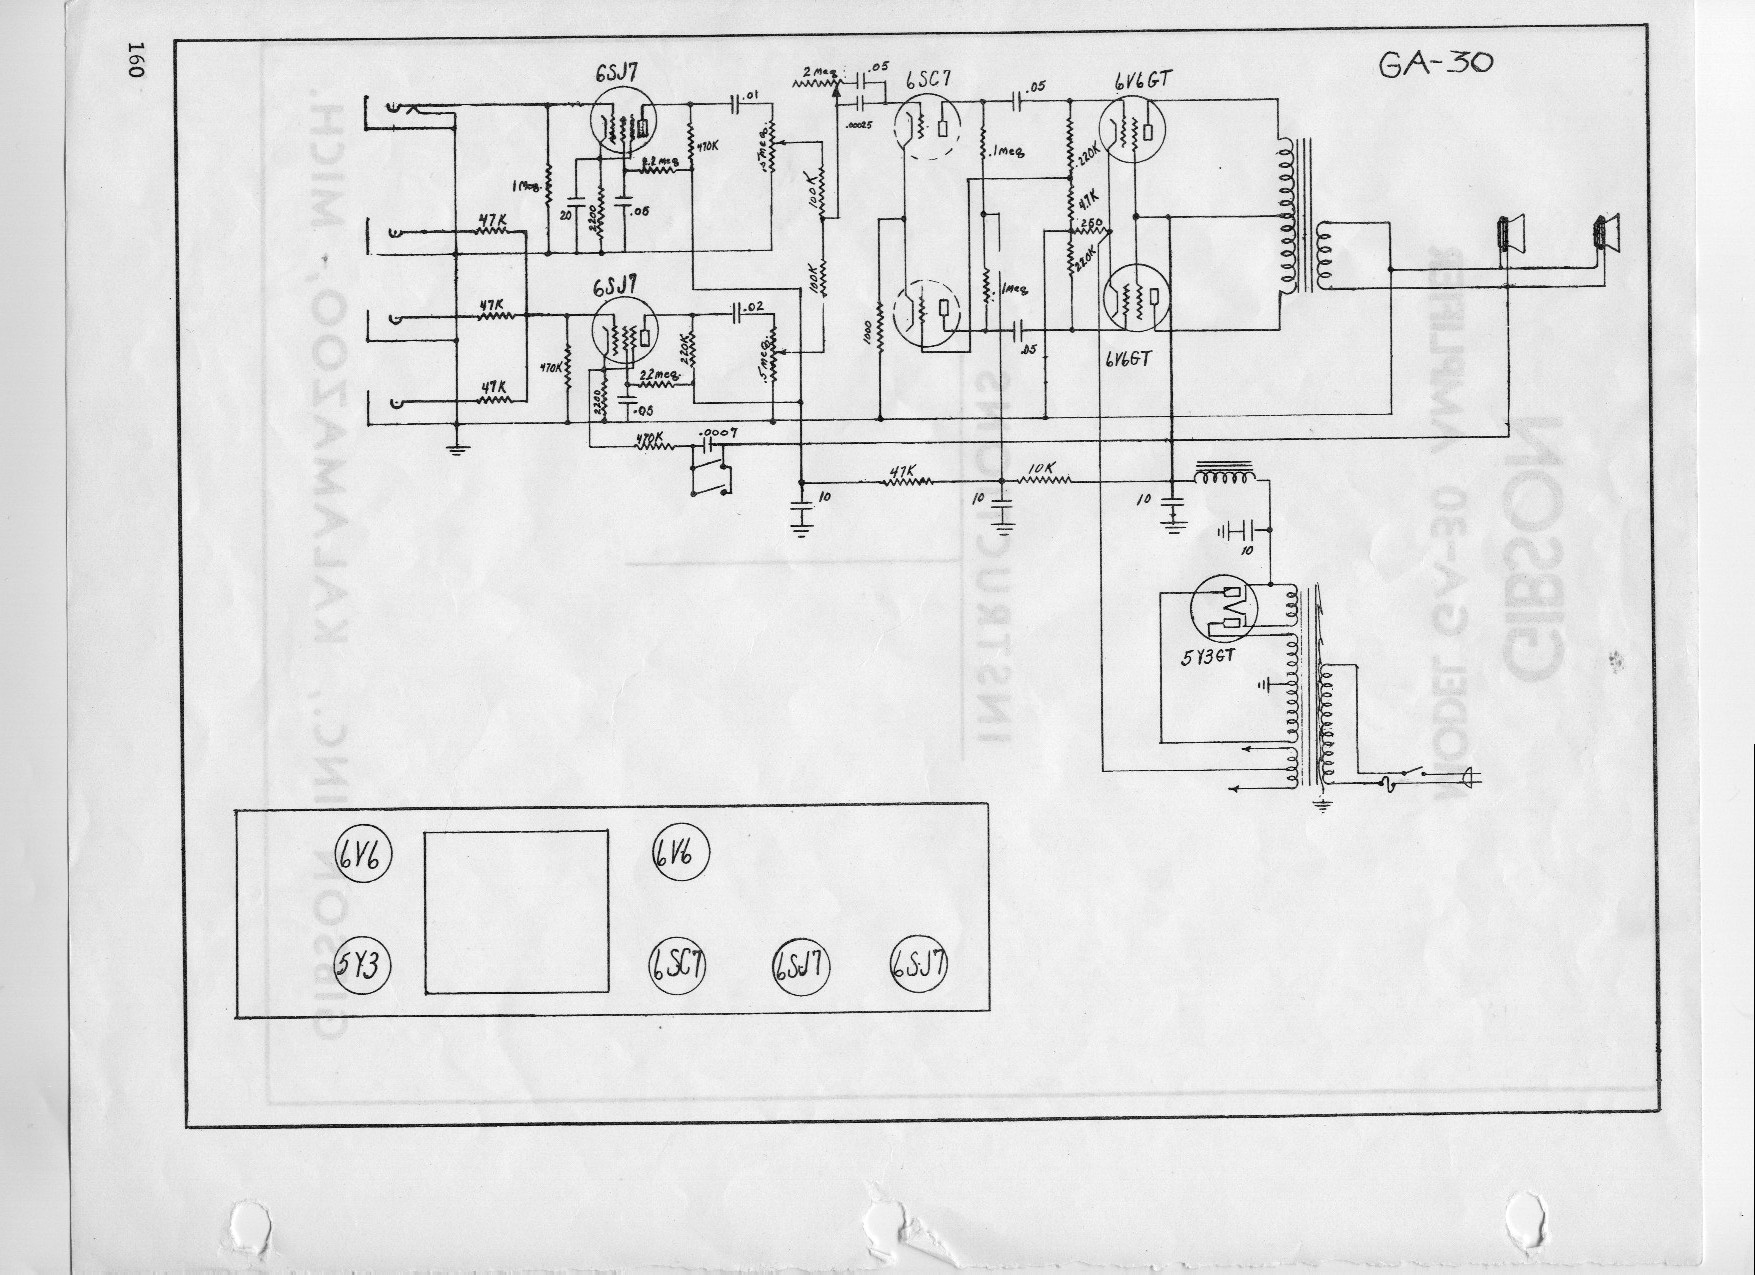 Schematics And Manuals